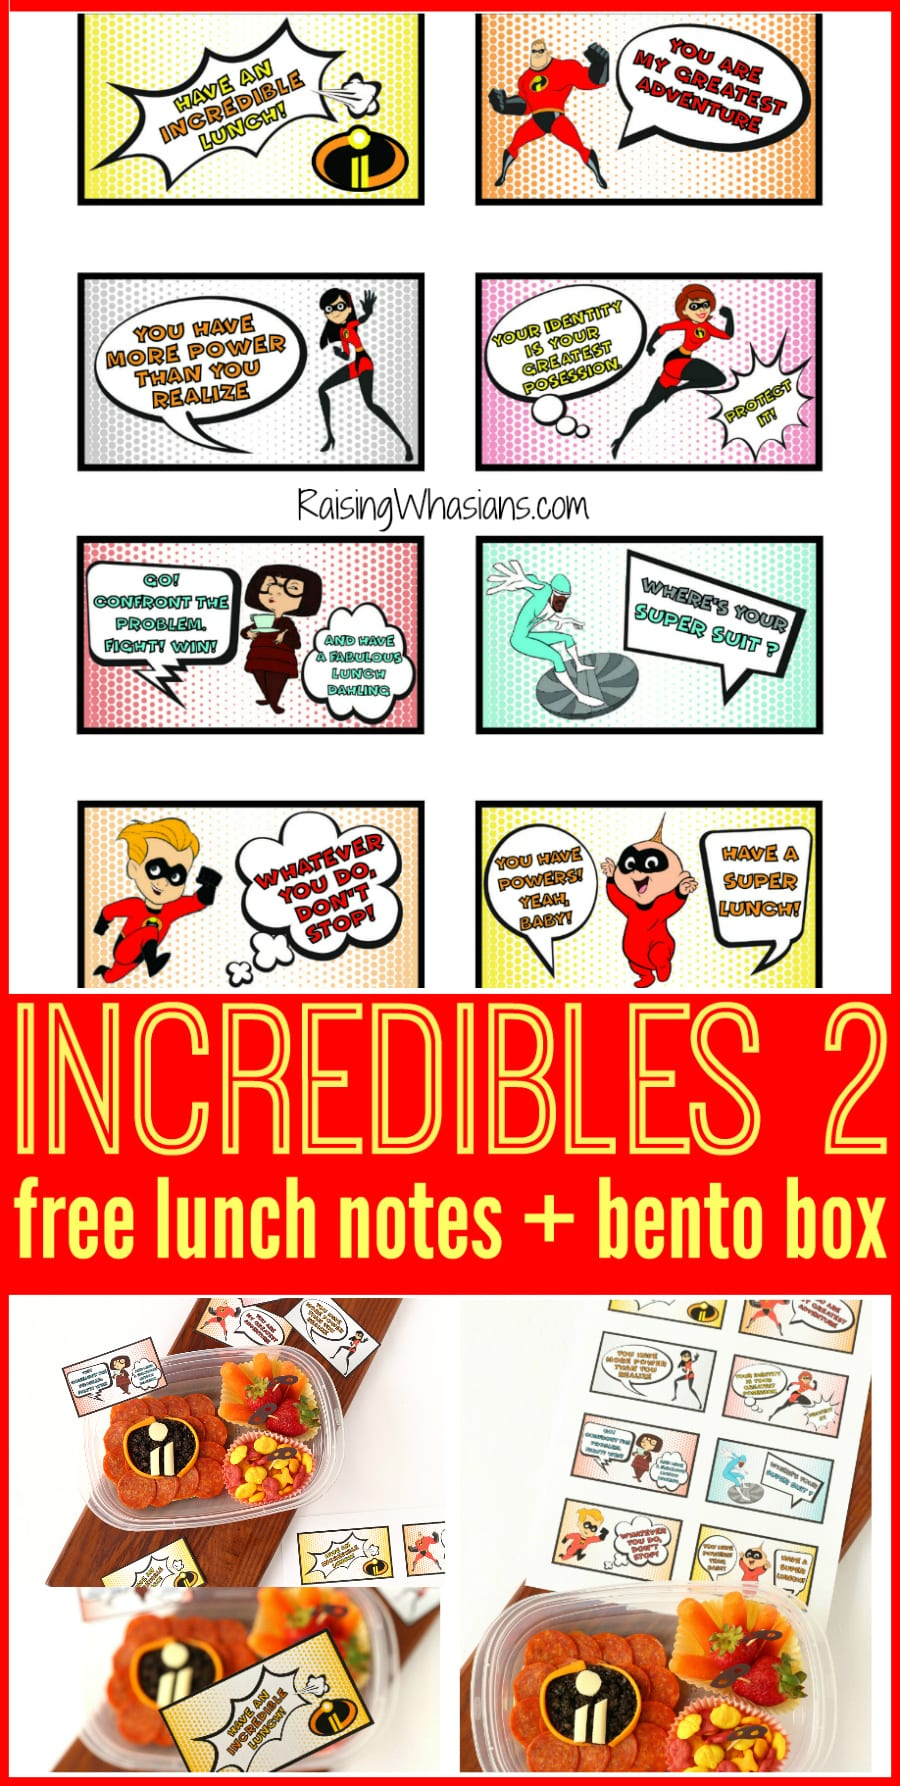 Back to school incredibles 2 lunch ideas